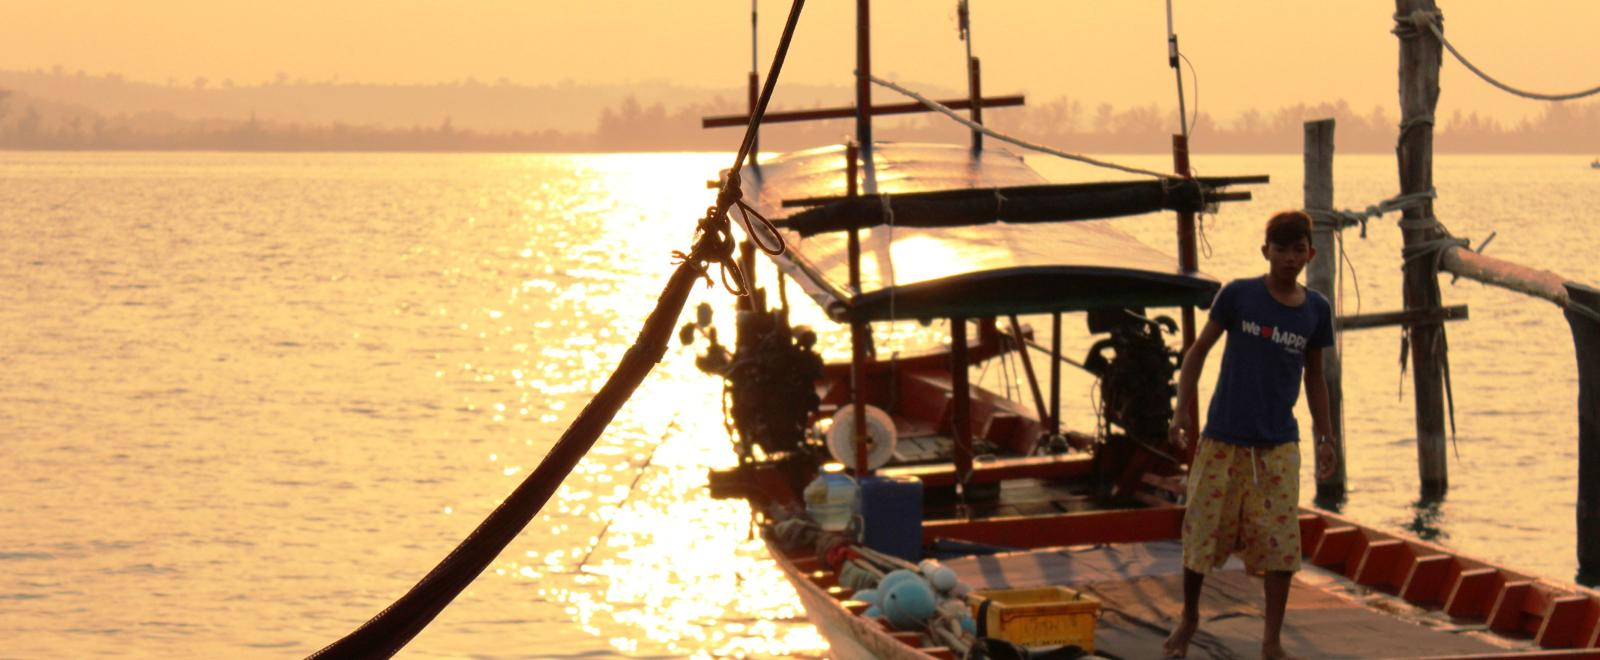 A local fisherman prepares a boat for a group of volunteers on a trip to experience Khmer cultural immersion.